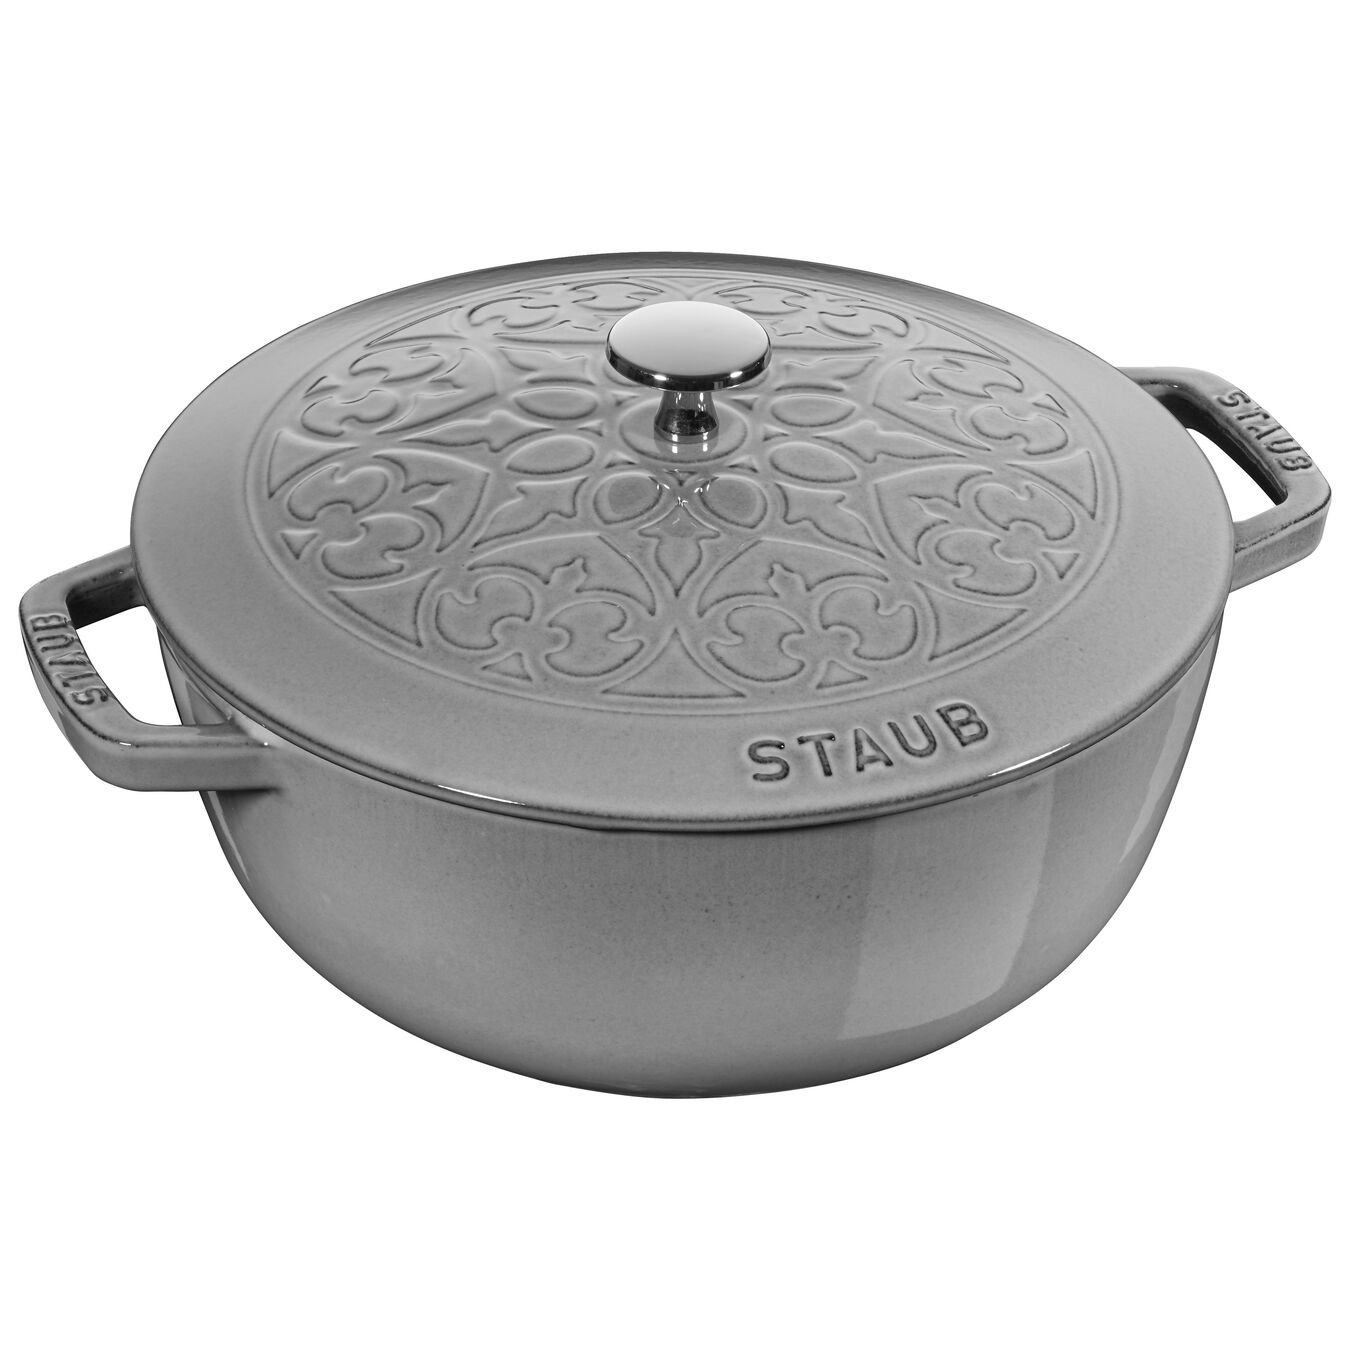 3.6 l round French Oven, lily decal, graphite-grey,,large 1